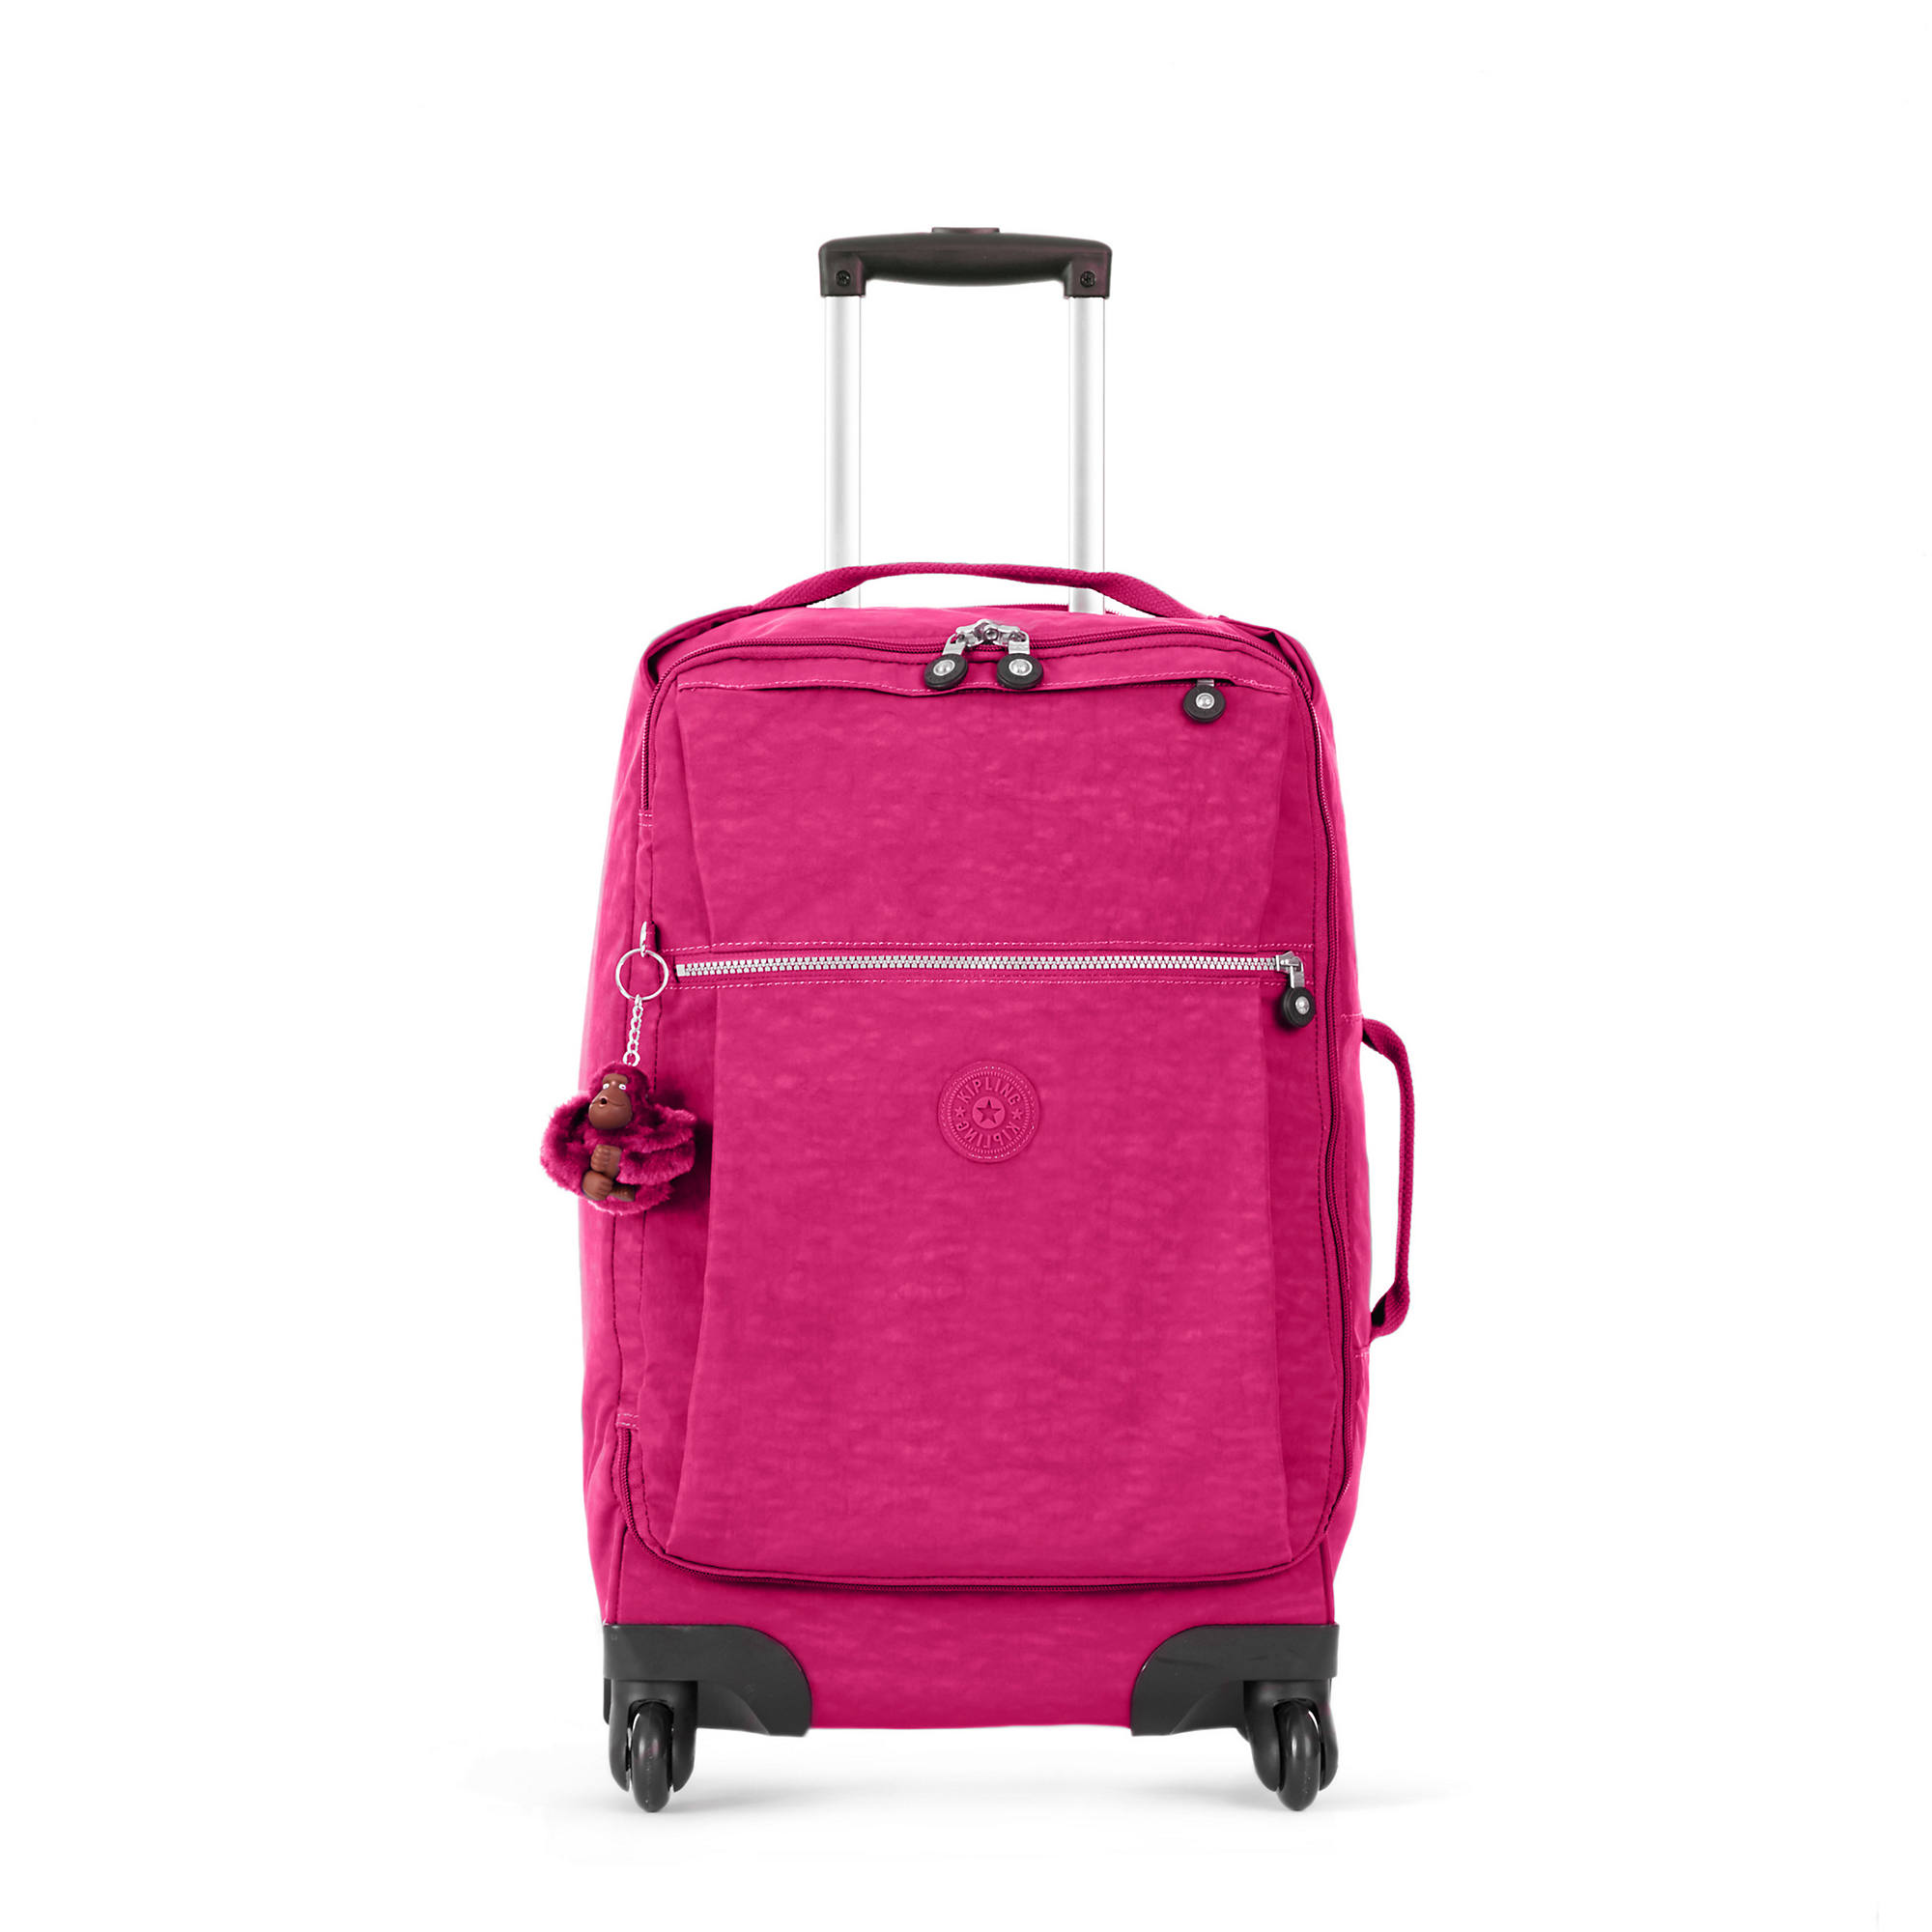 Rolling Luggage: Suitcases and Carry On with Wheels | Kipling